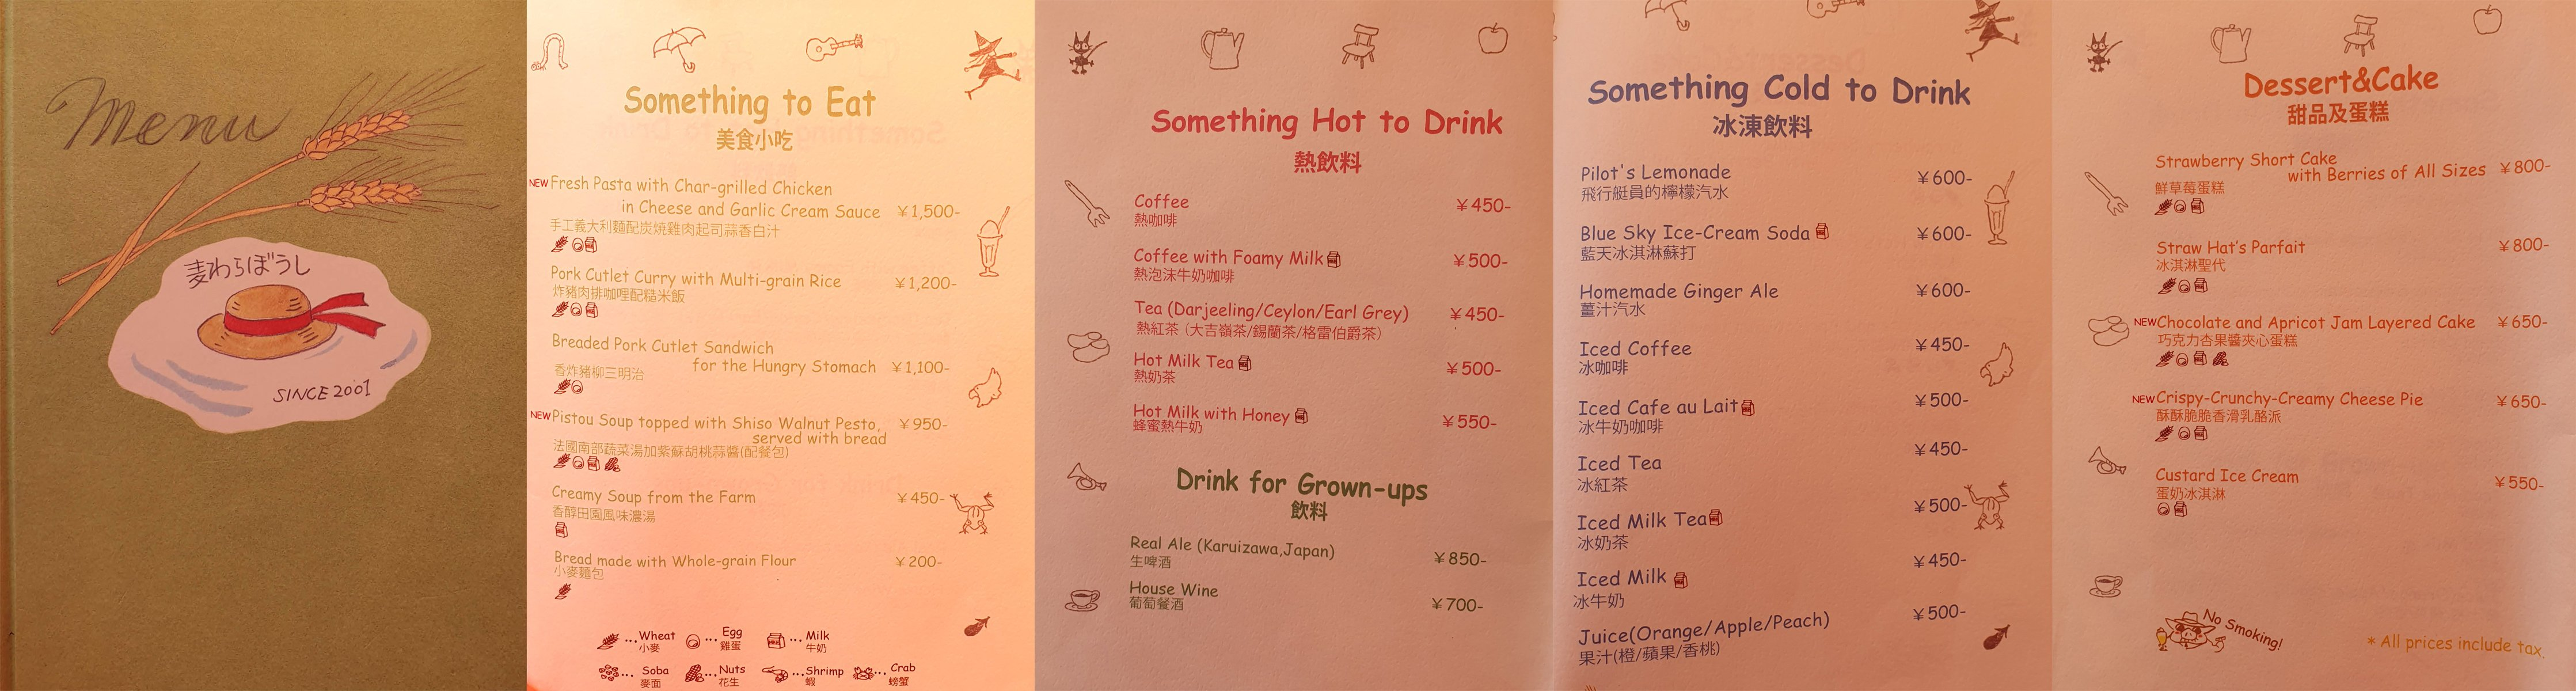 Ghibli Cafe Menu